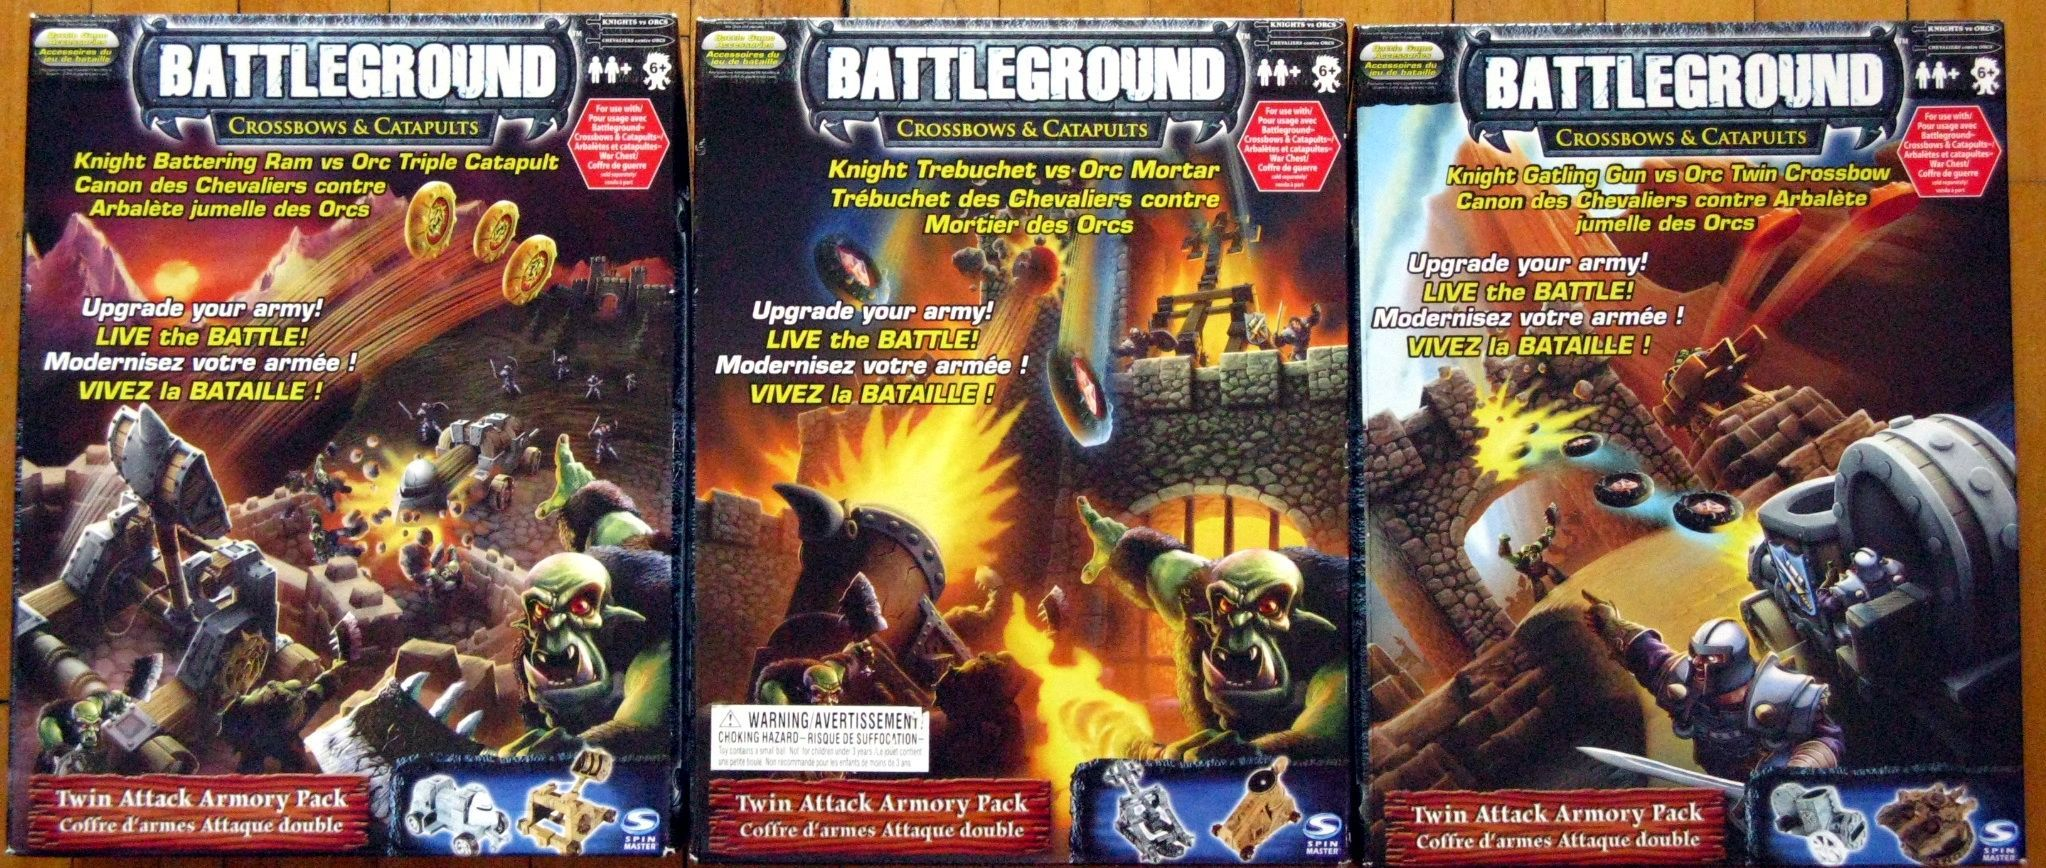 Battleground: Crossbows & Catapults Twin Attack Armory Packs